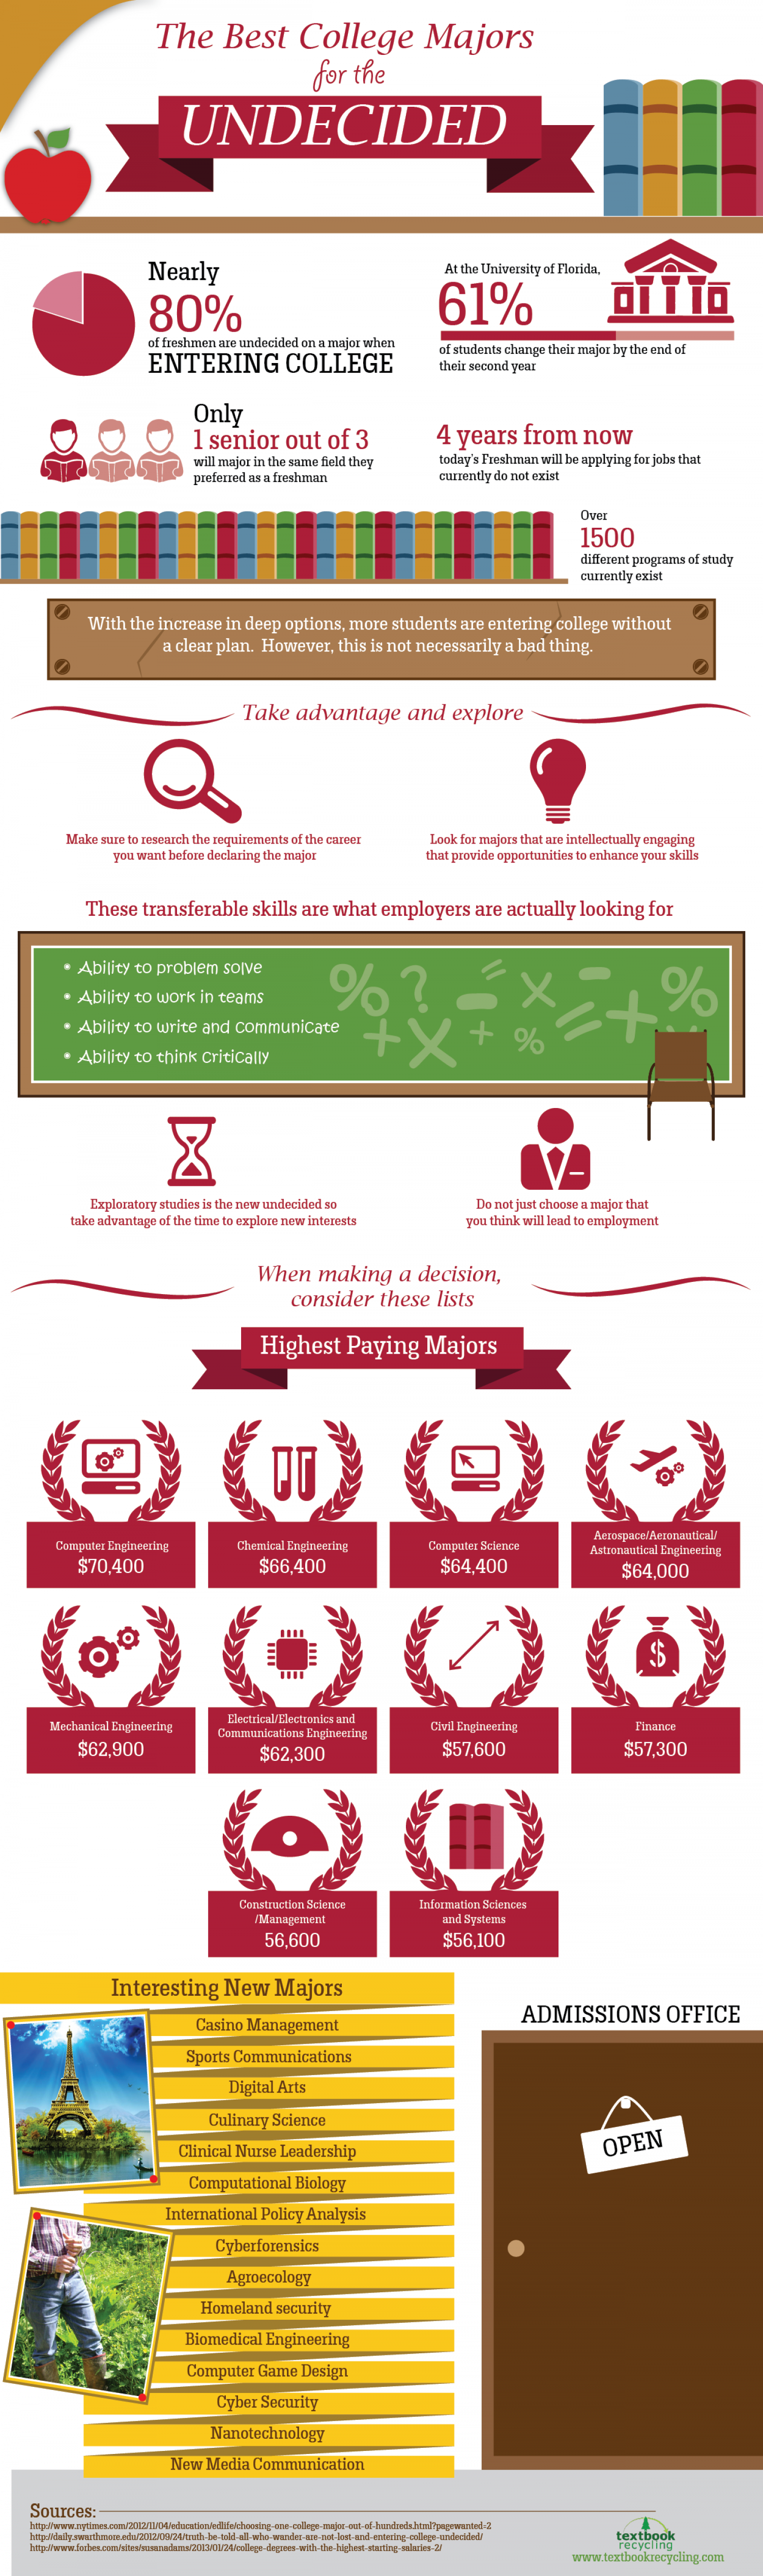 The Best College Majors for the Undecided  Infographic